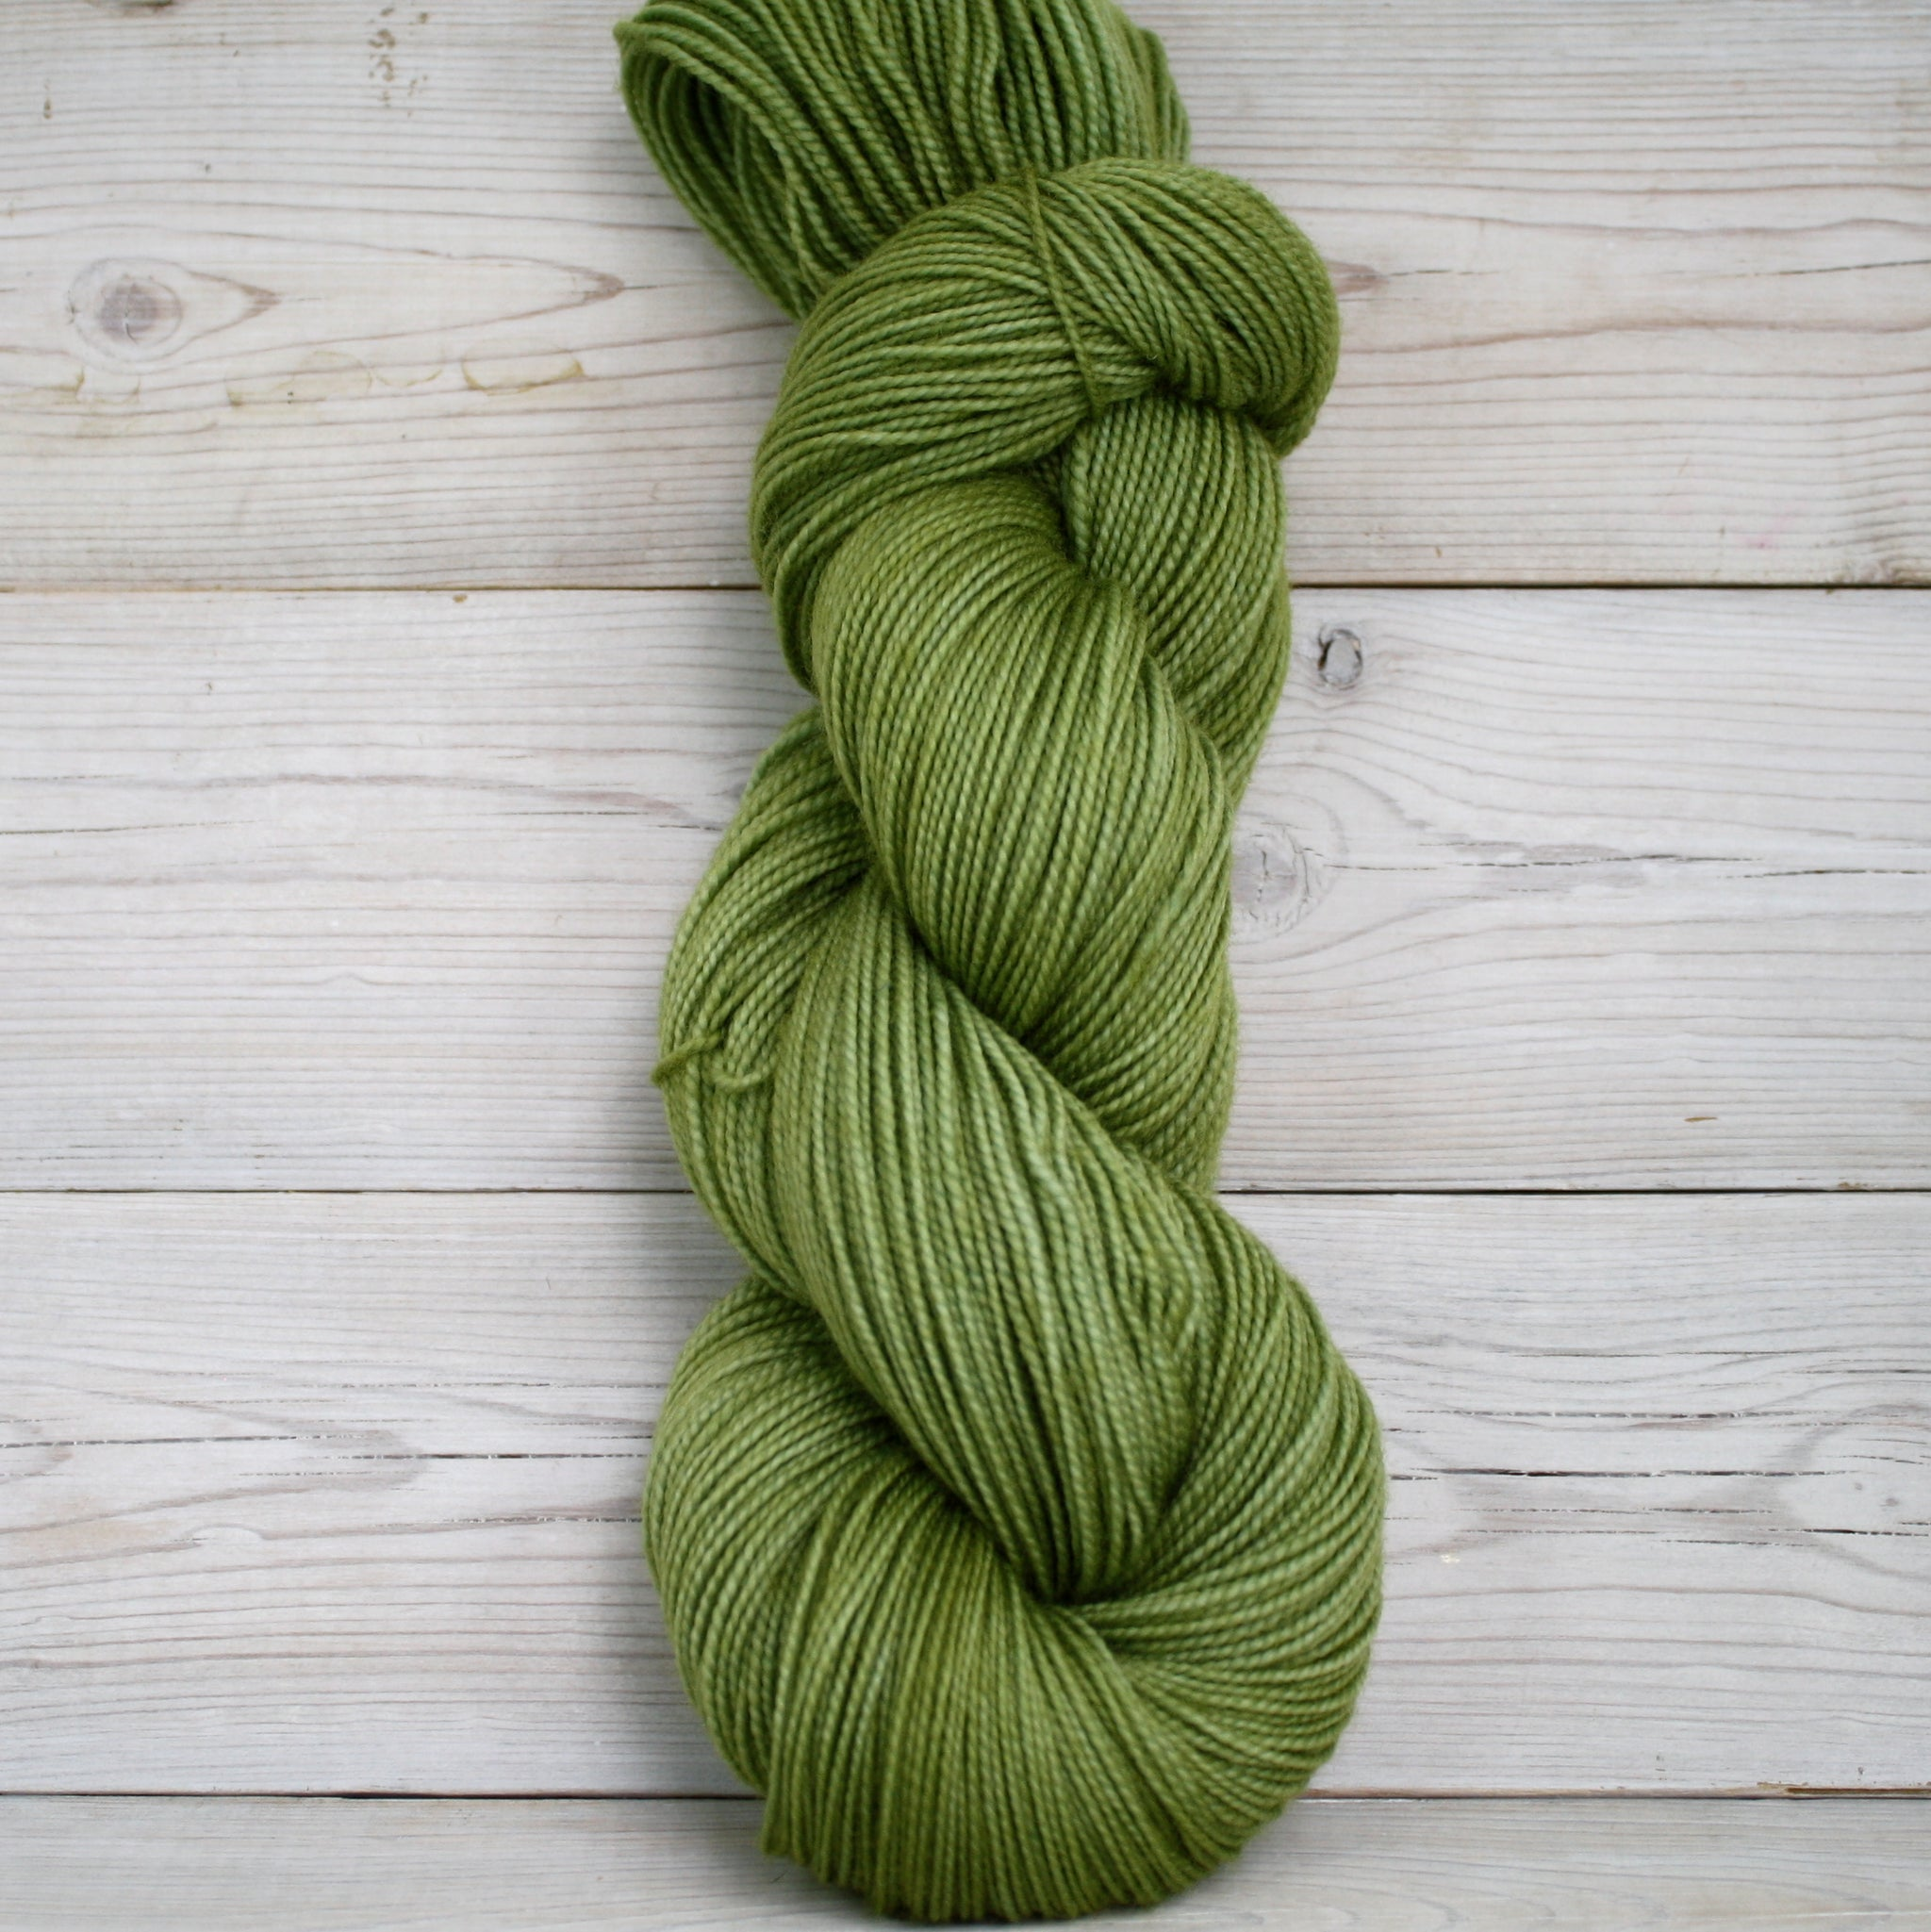 Celeste Yarn | Colorway: Avocado | Overstock